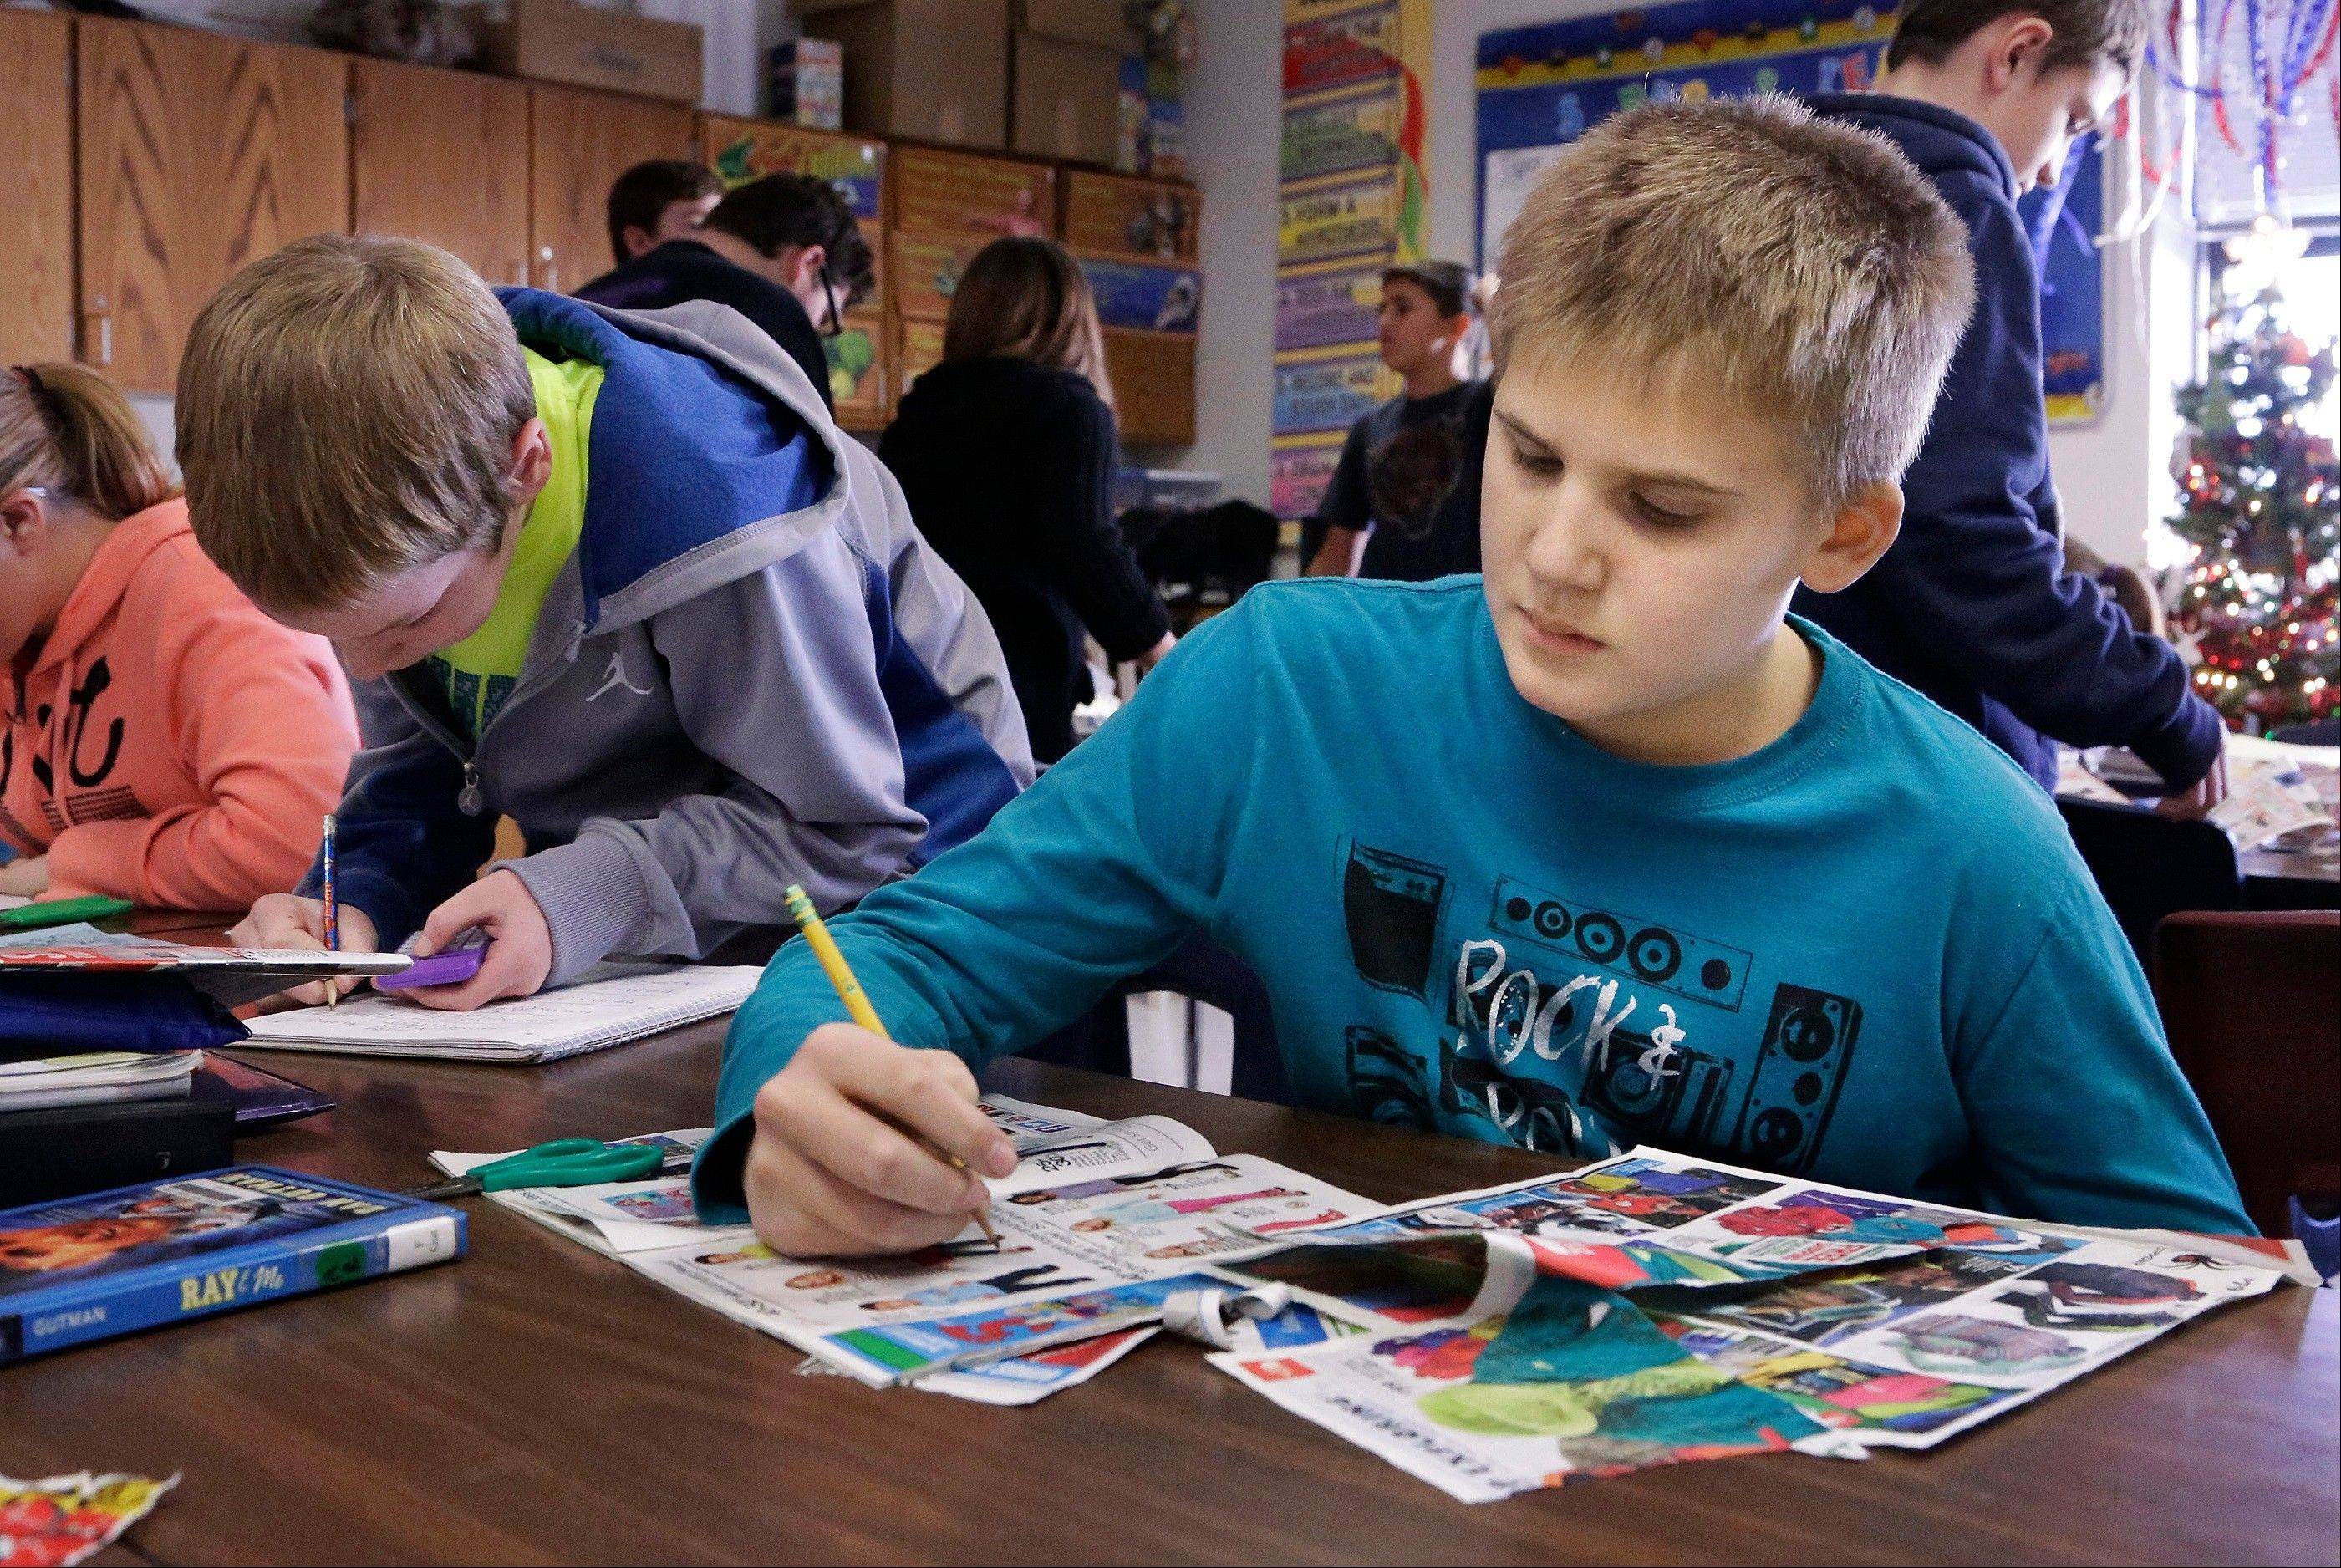 Jackson Cunningham, 11, works on a math project with his classmates at Oakwood Grade School in Oakwood, Ill. Cunningham suffered a stroke in 2011 after an afternoon basketball game, and much of the left side of his body became paralyzed. Resilience and determination have been source of inspiration to U.S. Sen. Mark Kirk, who Cunningham reached out to when Kirk suffered a stroke of his own a year later.